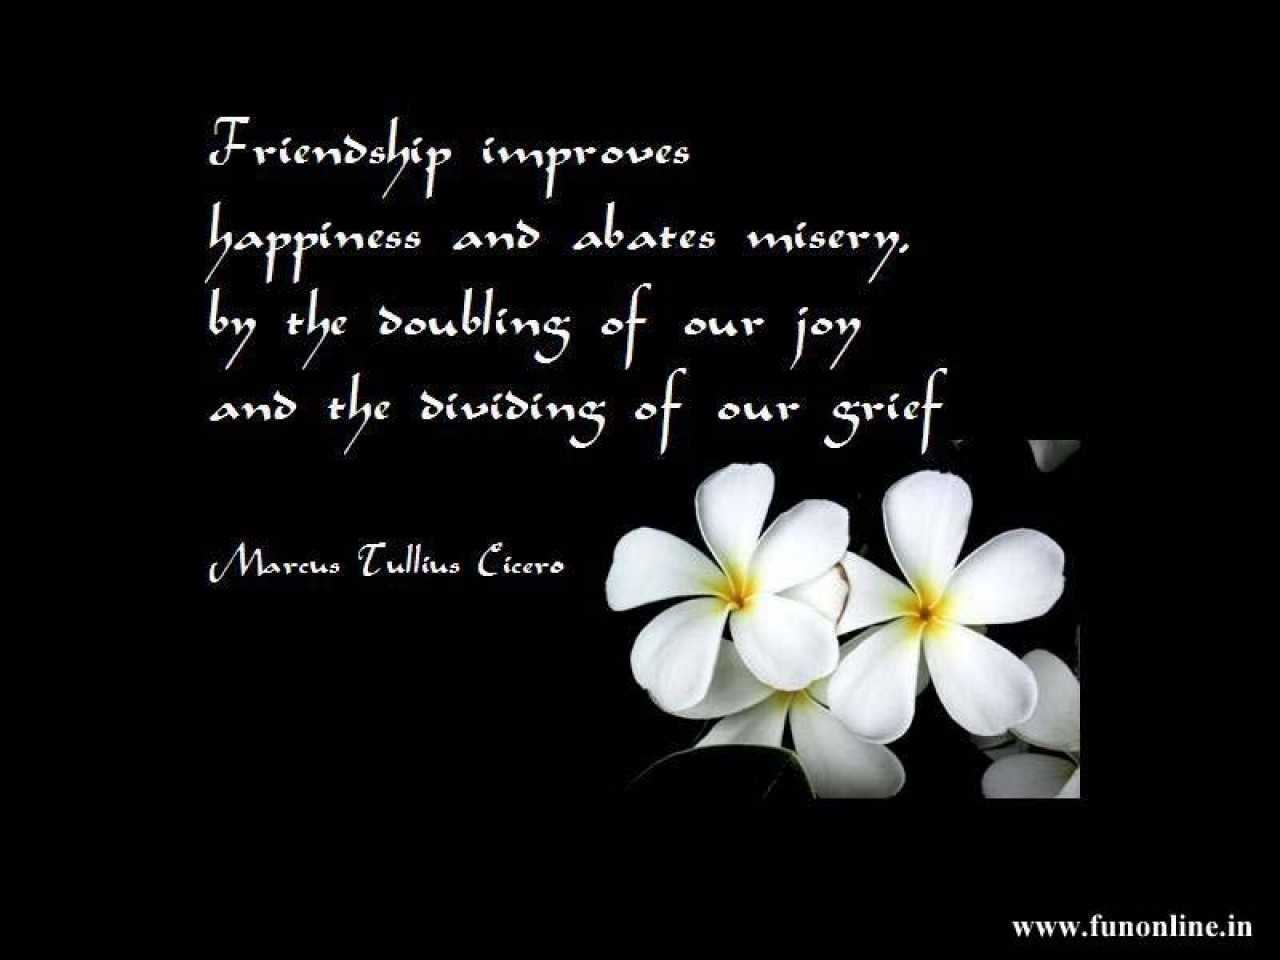 Free Download Friendship Quotes Wallpapers Friendship Quotes